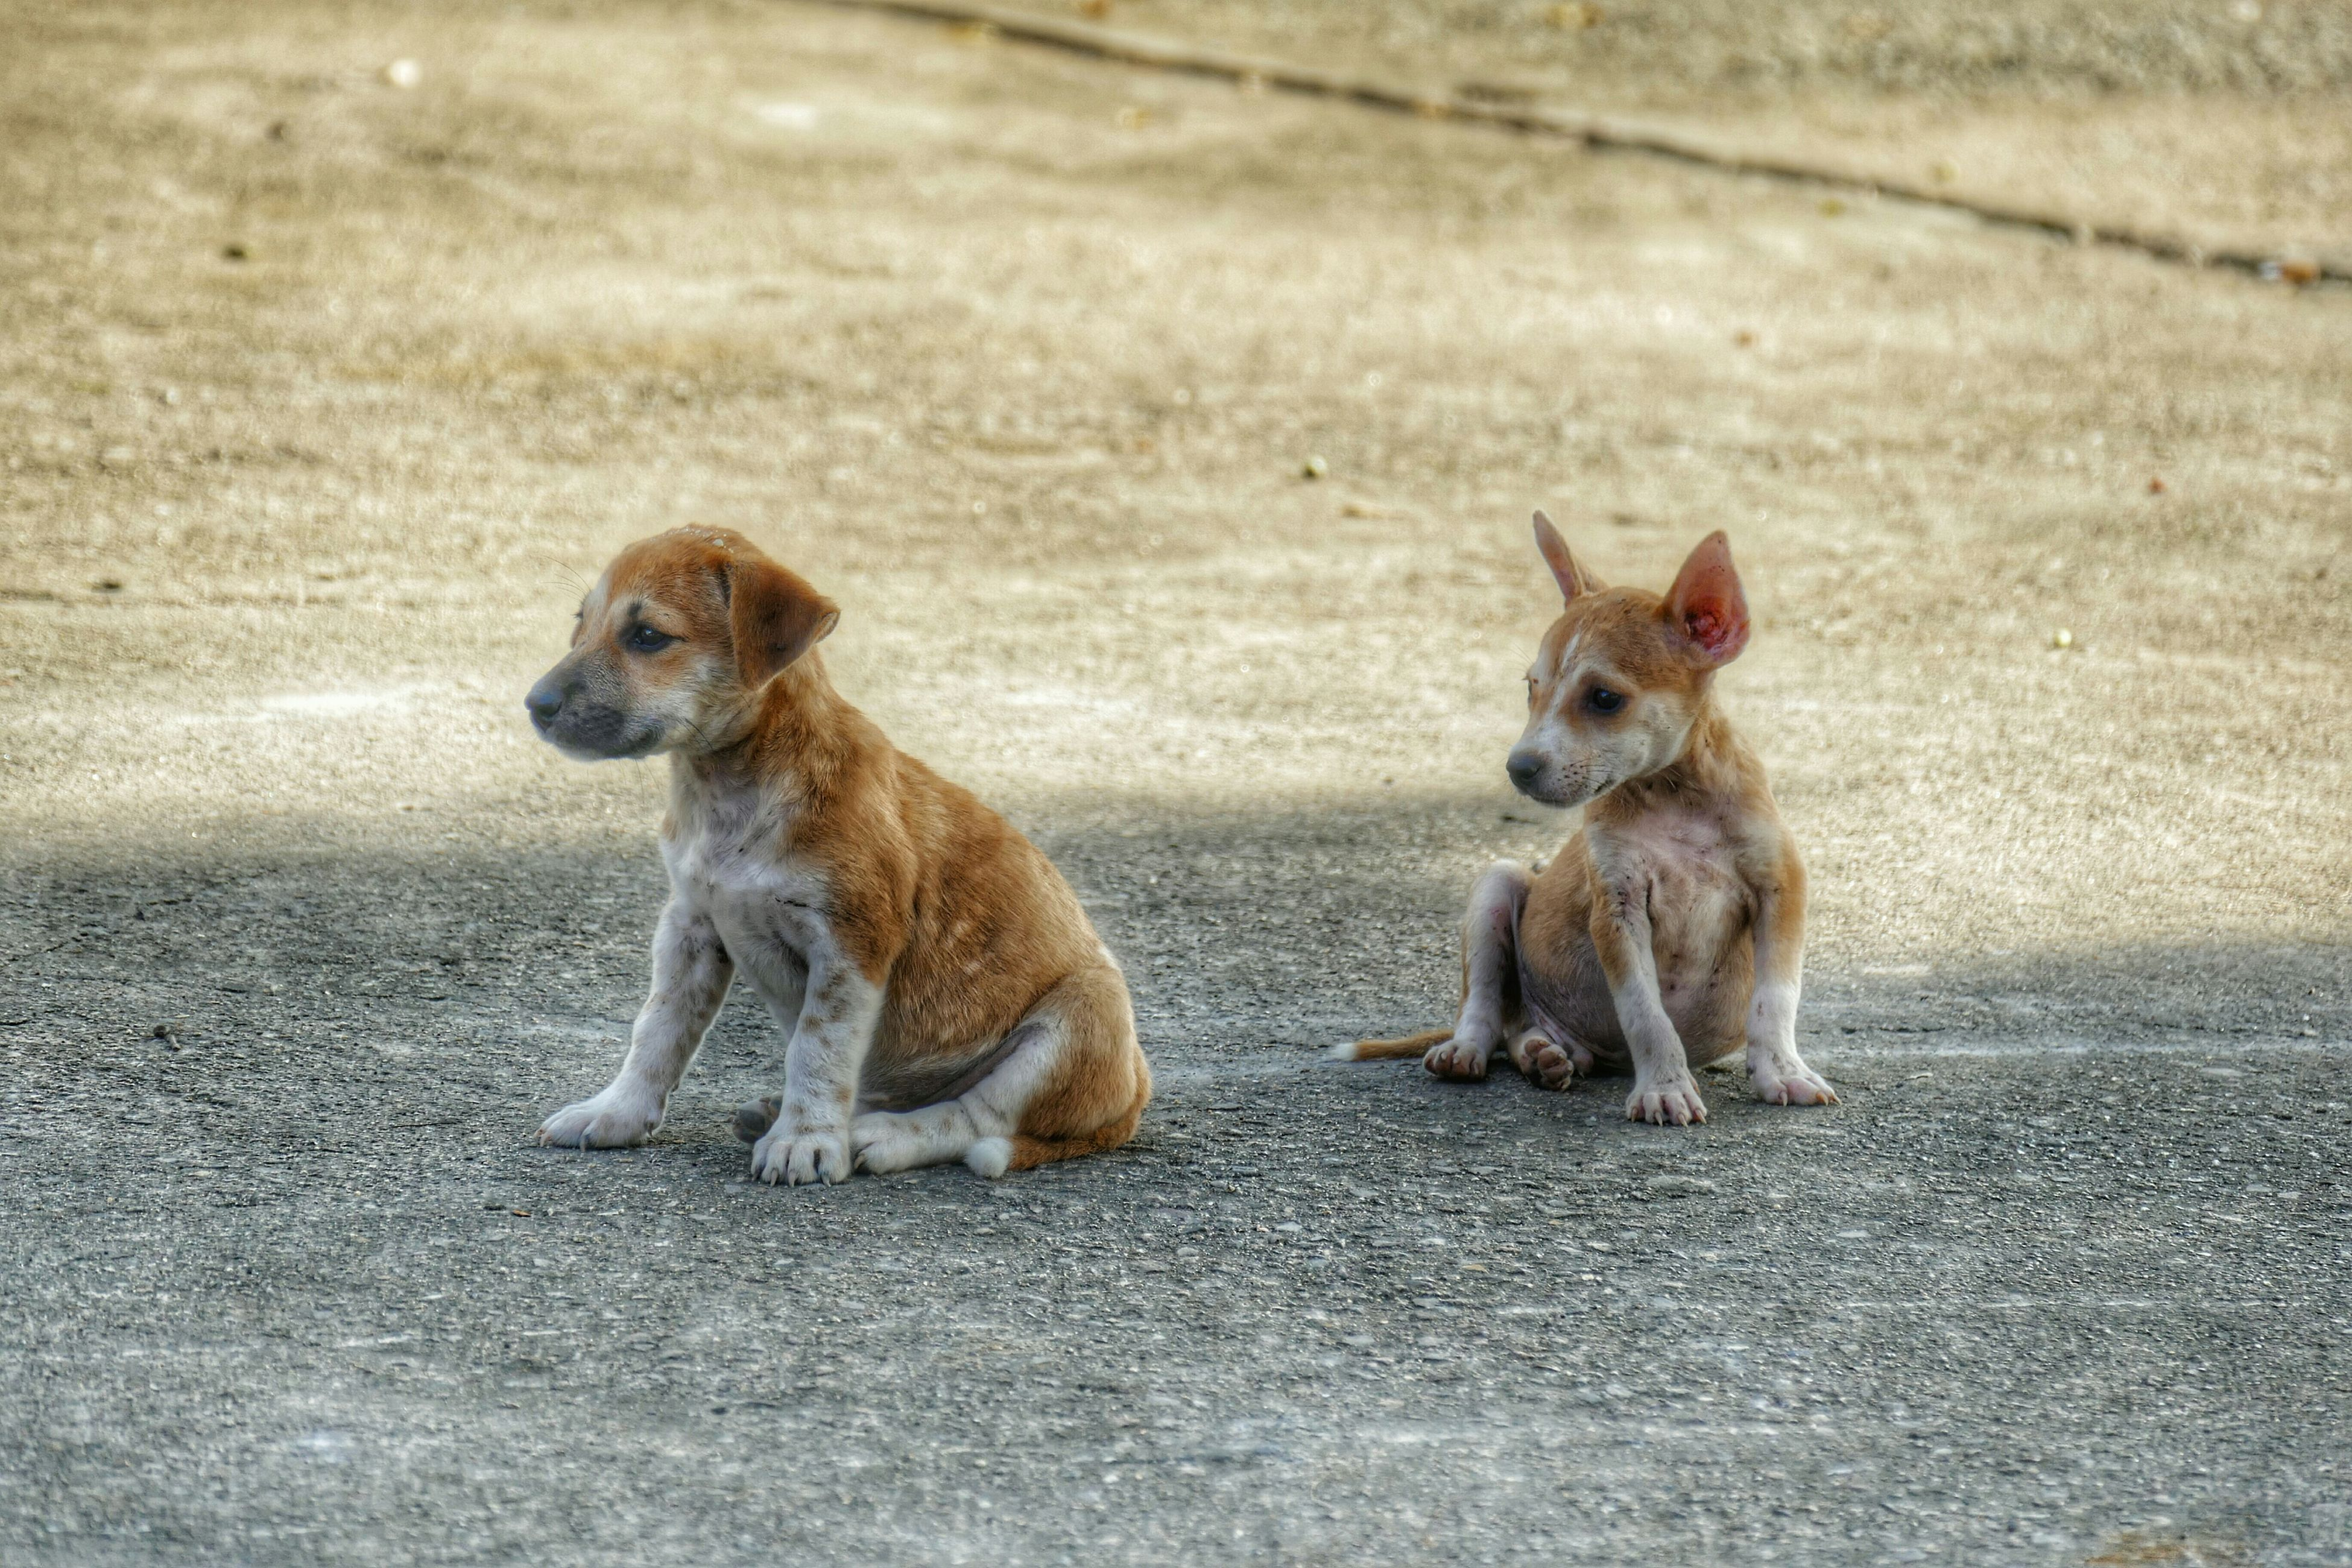 animal themes, mammal, one animal, domestic animals, pets, full length, dog, two animals, focus on foreground, young animal, sitting, animals in the wild, day, outdoors, wildlife, looking away, walking, street, selective focus, monkey